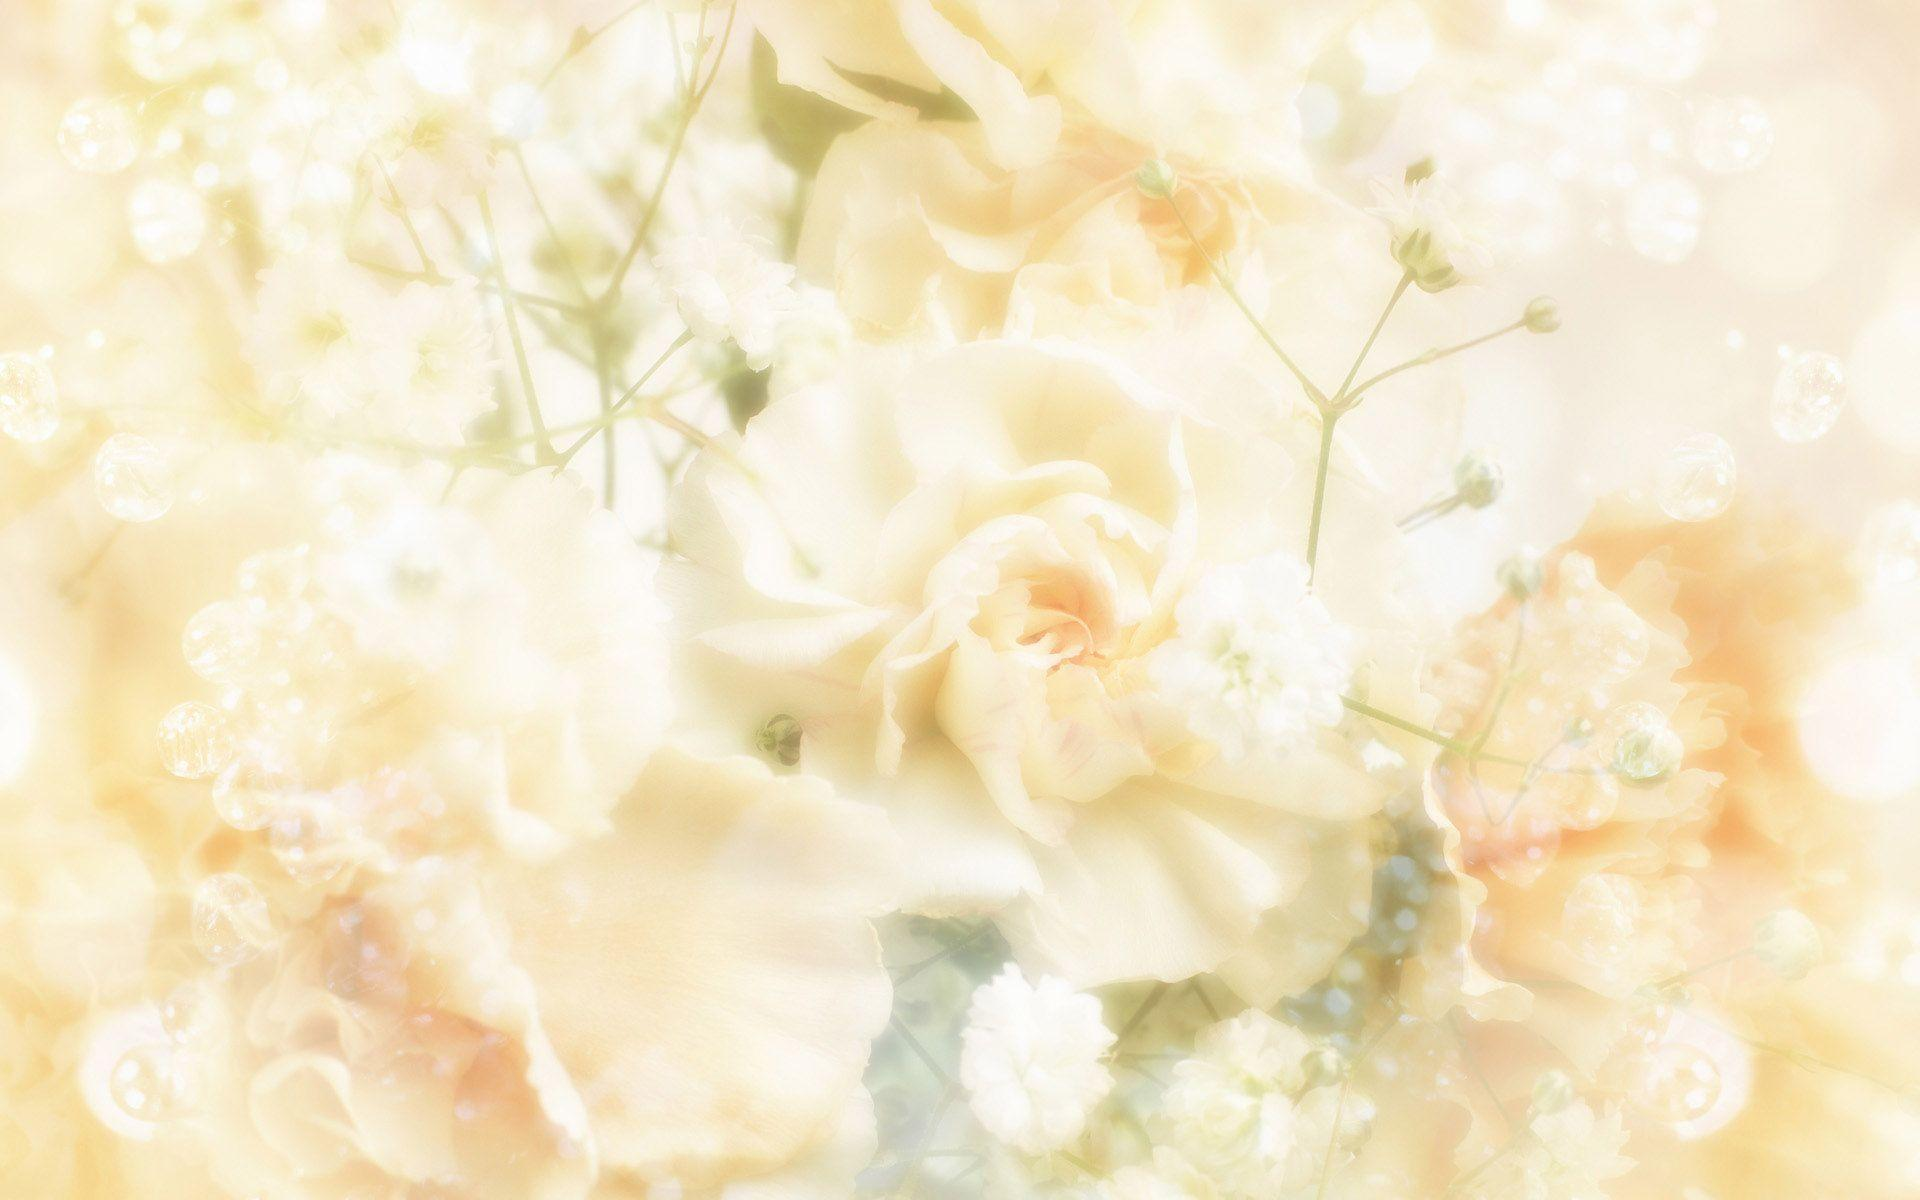 free wedding backgrounds image wallpaper cave